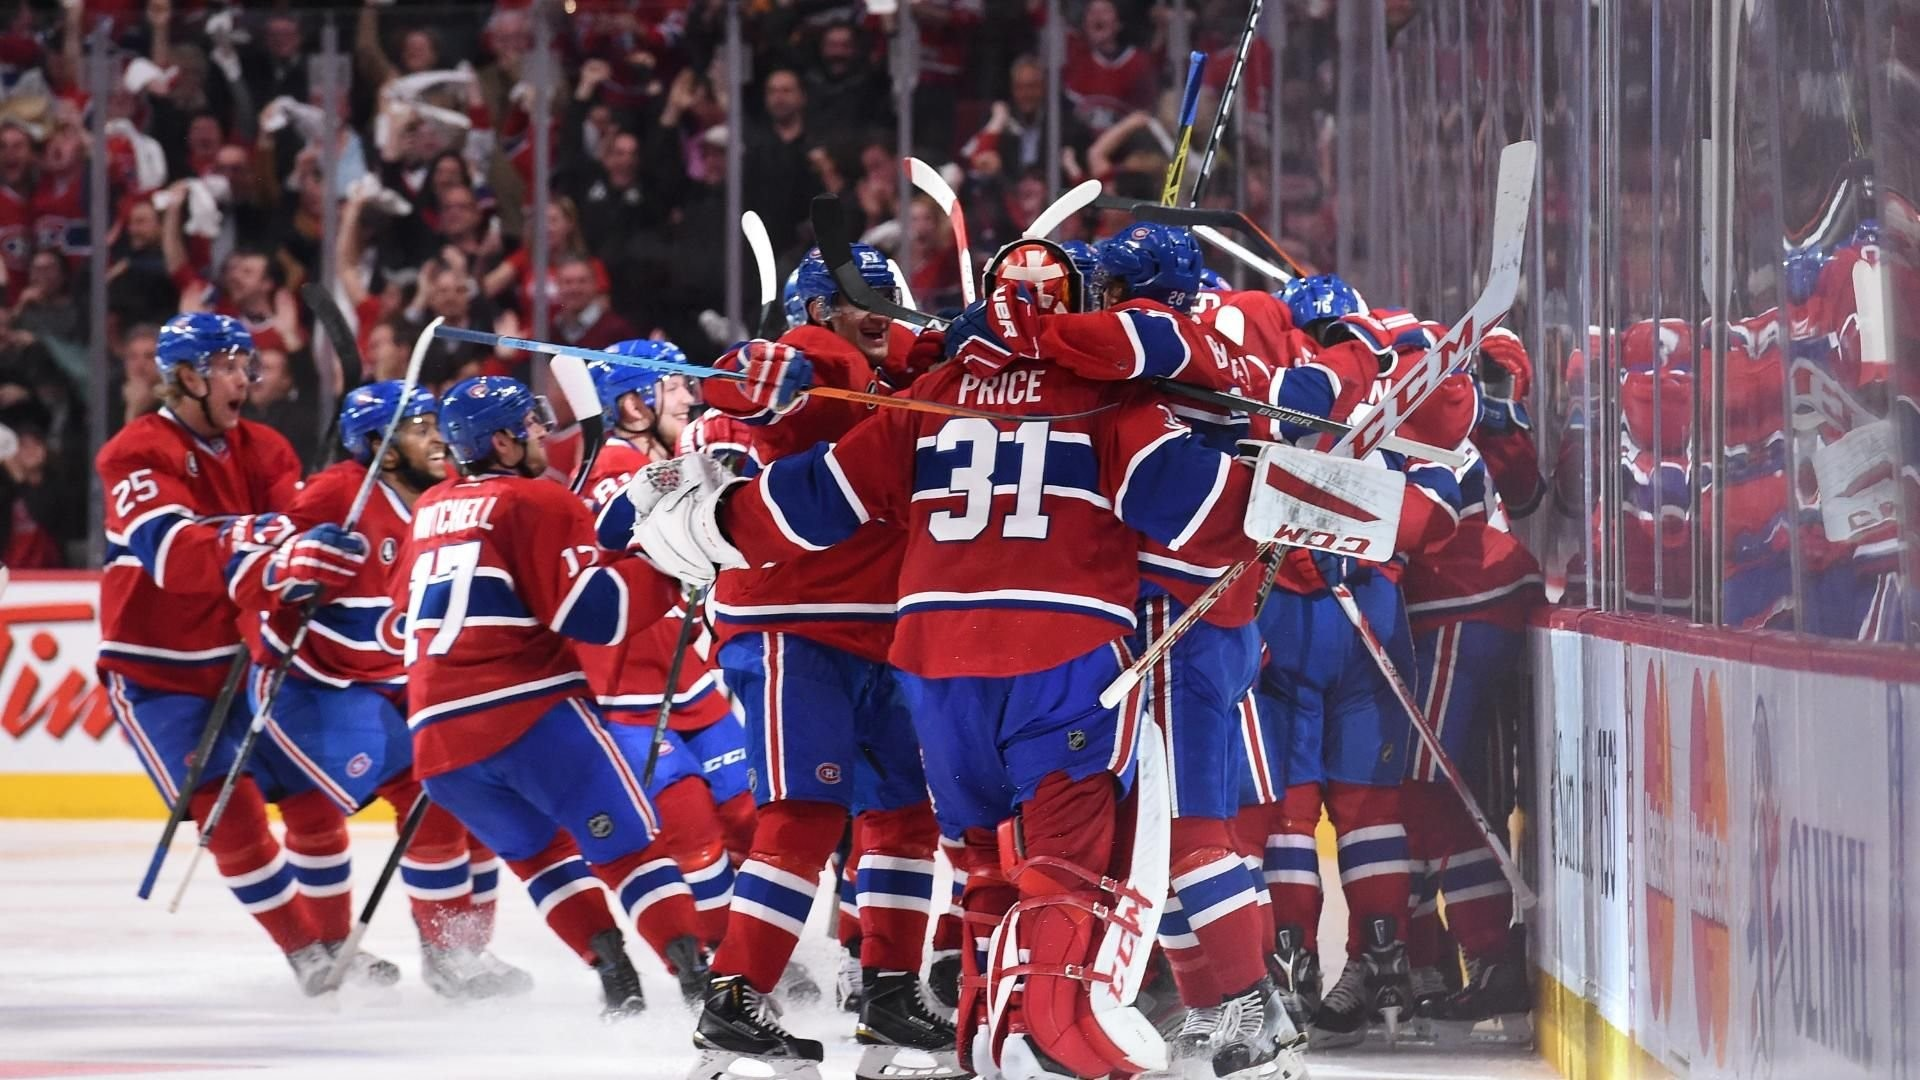 Montreal Canadiens Wallpaper 54 Images